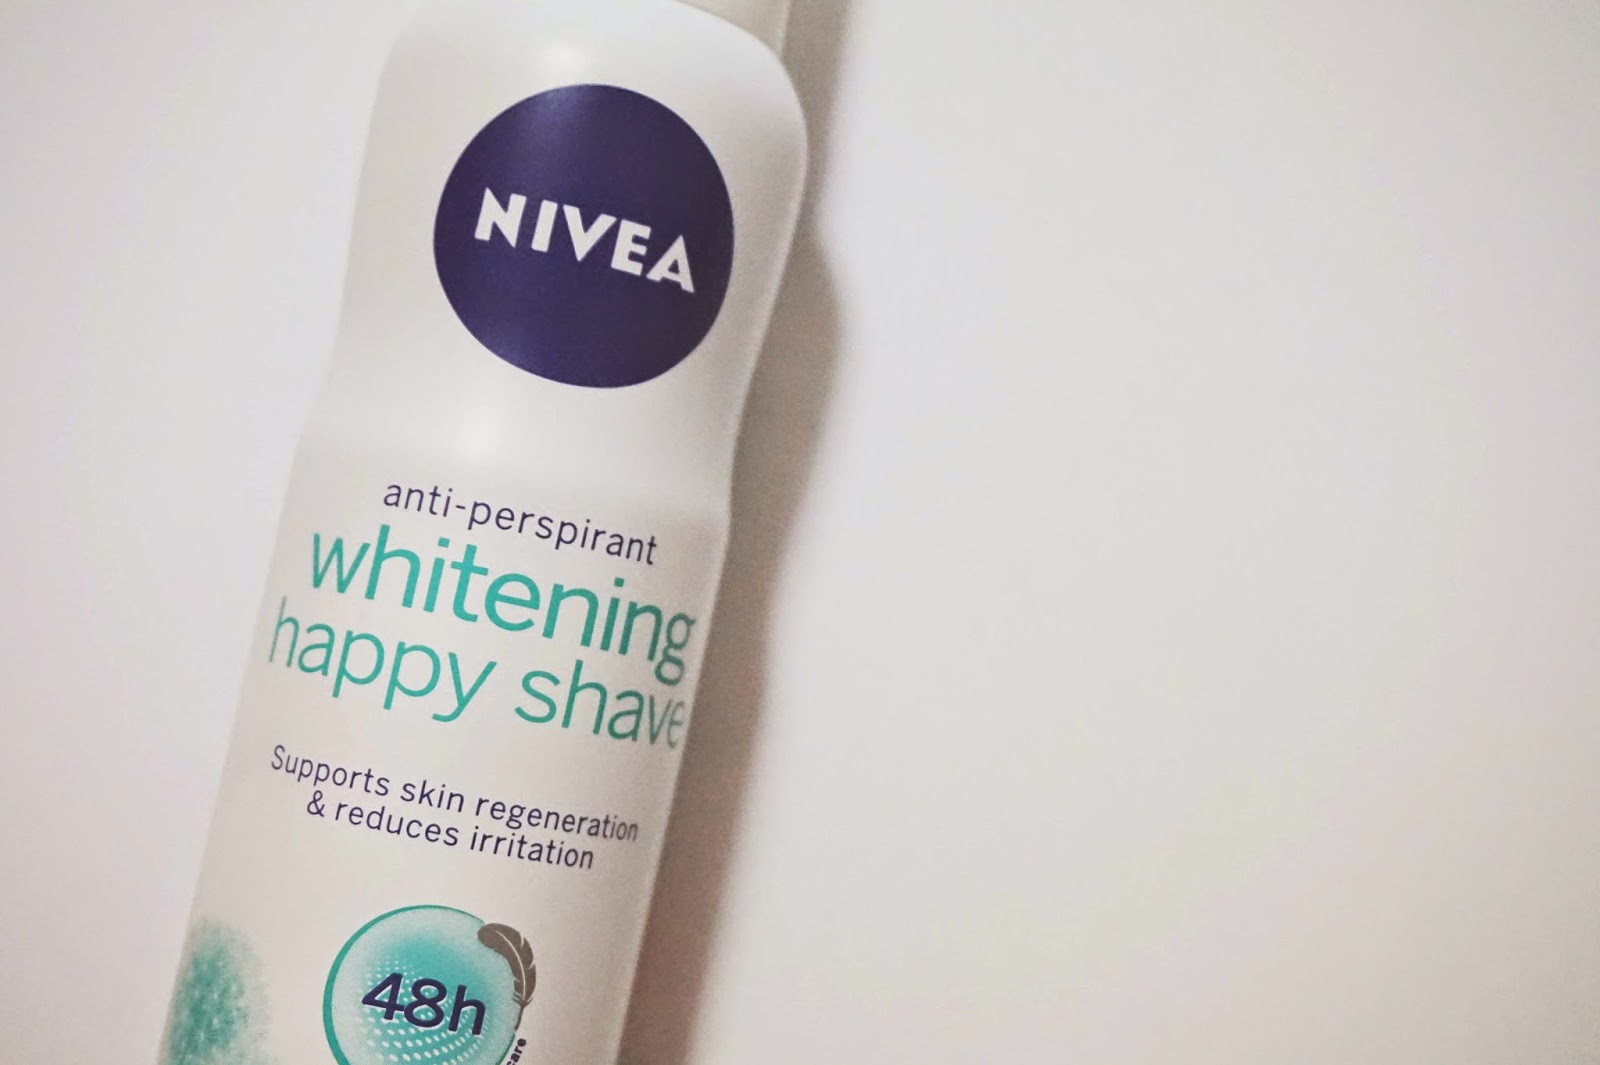 Dmints Sponsored Review Nivea Whitening Happy Shave